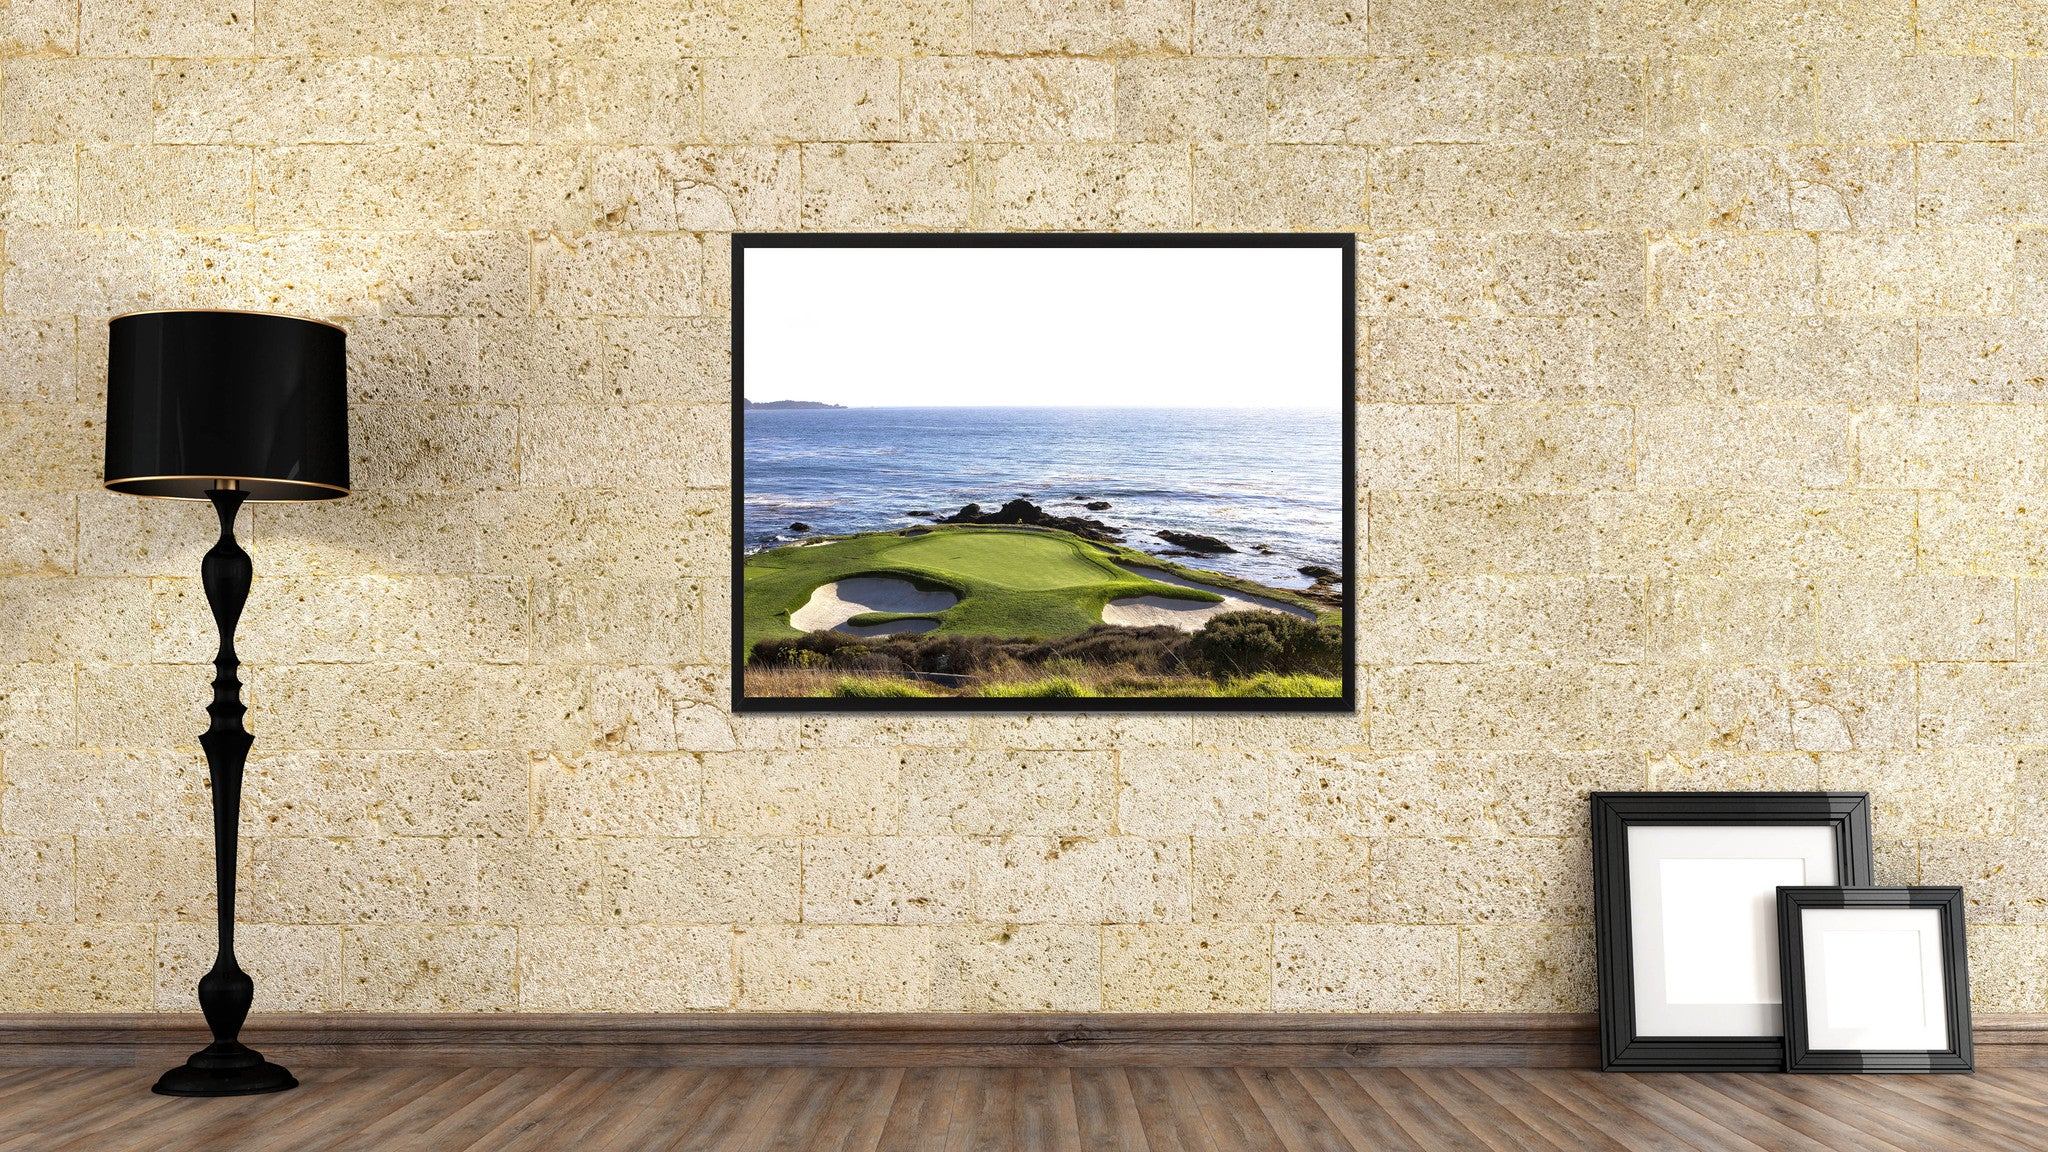 Pebble Beach Golf Course Photo Canvas Print Pictures Frames Home Décor Wall Art Gifts